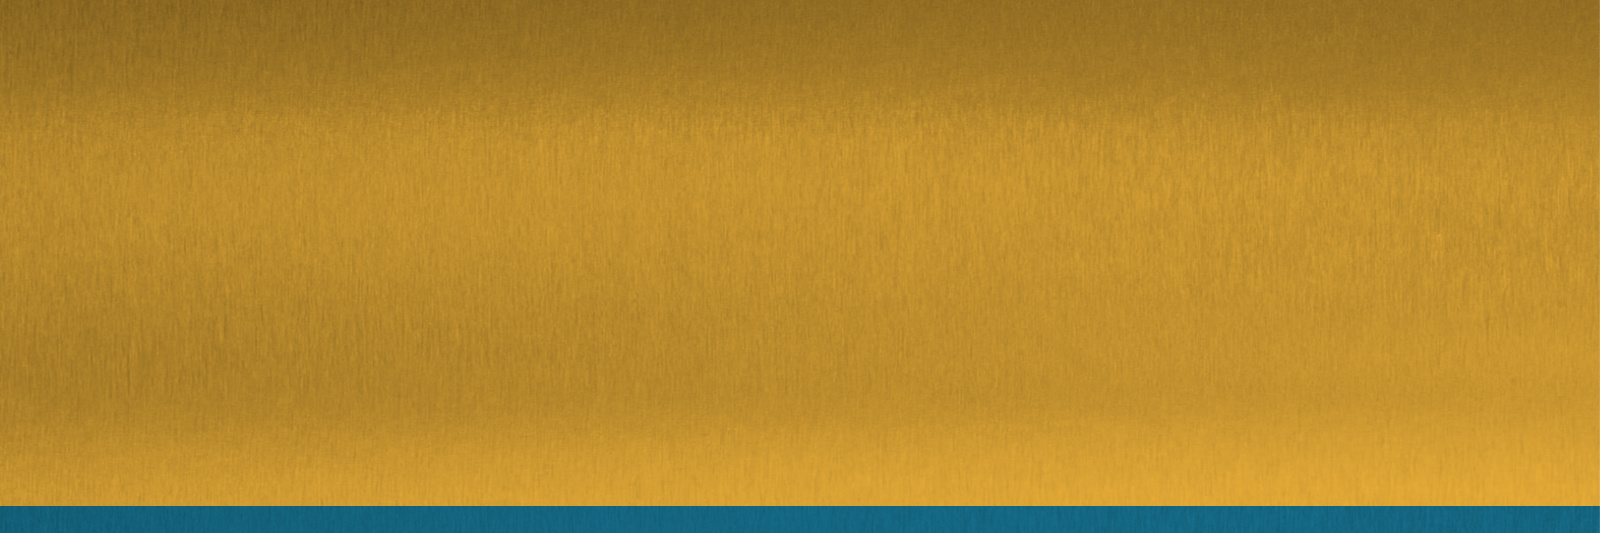 Gold background peacock border